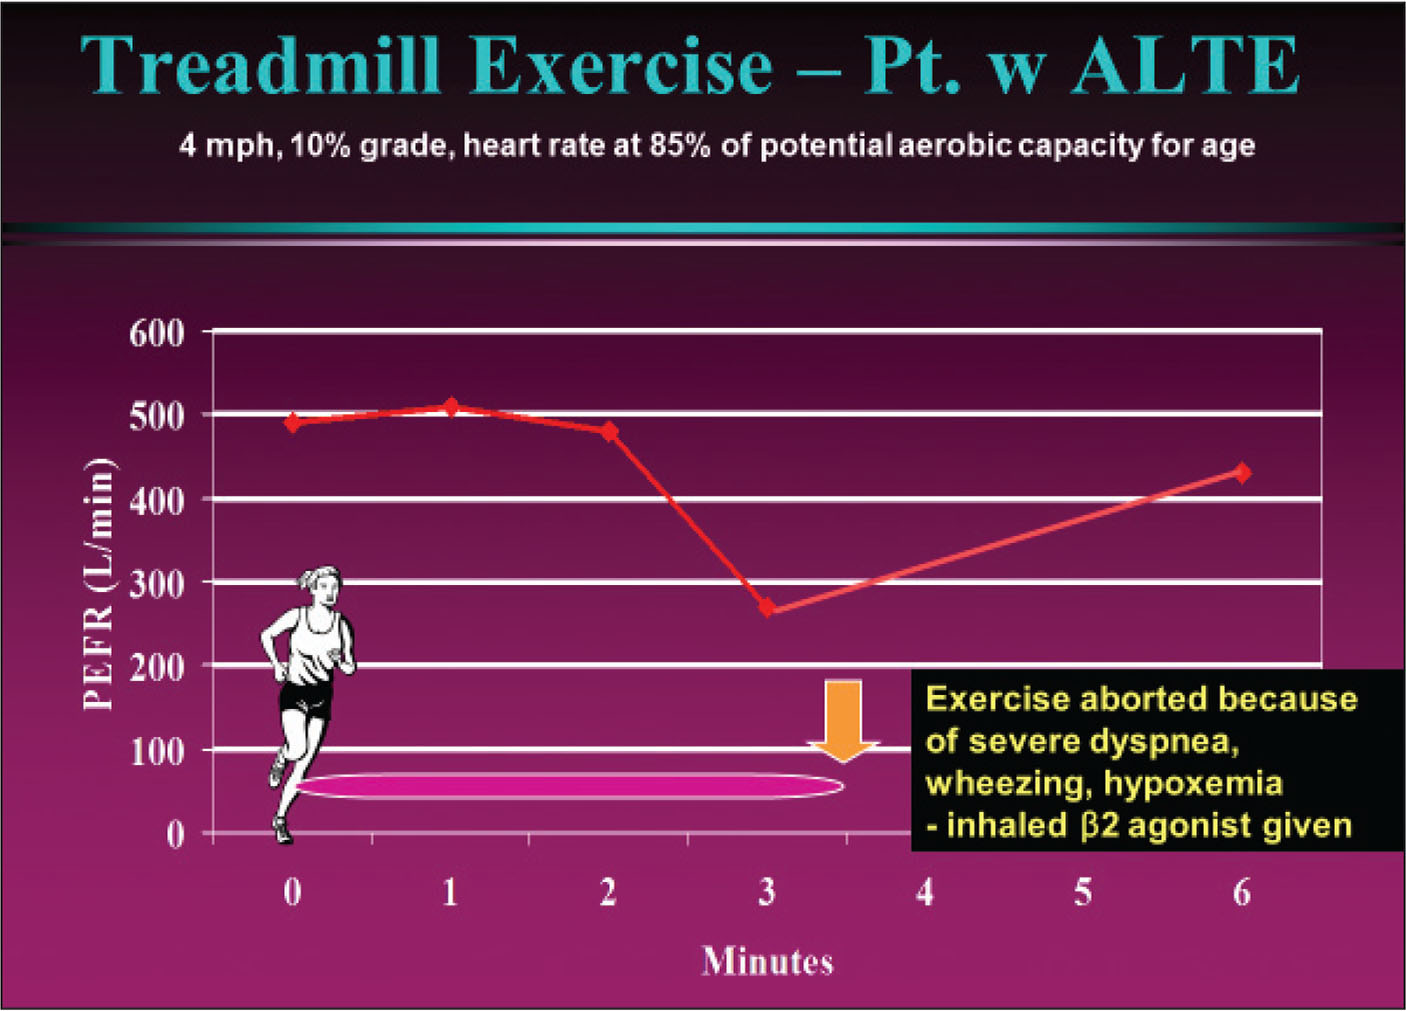 A 15-year-old girl with a history of repeated exertion-induced, severe acute life-threatening episodes from asthma was given a treadmill exercise test. The test was performed at 4 mph with a 10% grade, and heart rate reaching a value consistent with 85% of maximal aerobic capacity for age. The peak expiratory flow rate (PEFR) was used to monitor her pulmonary function.